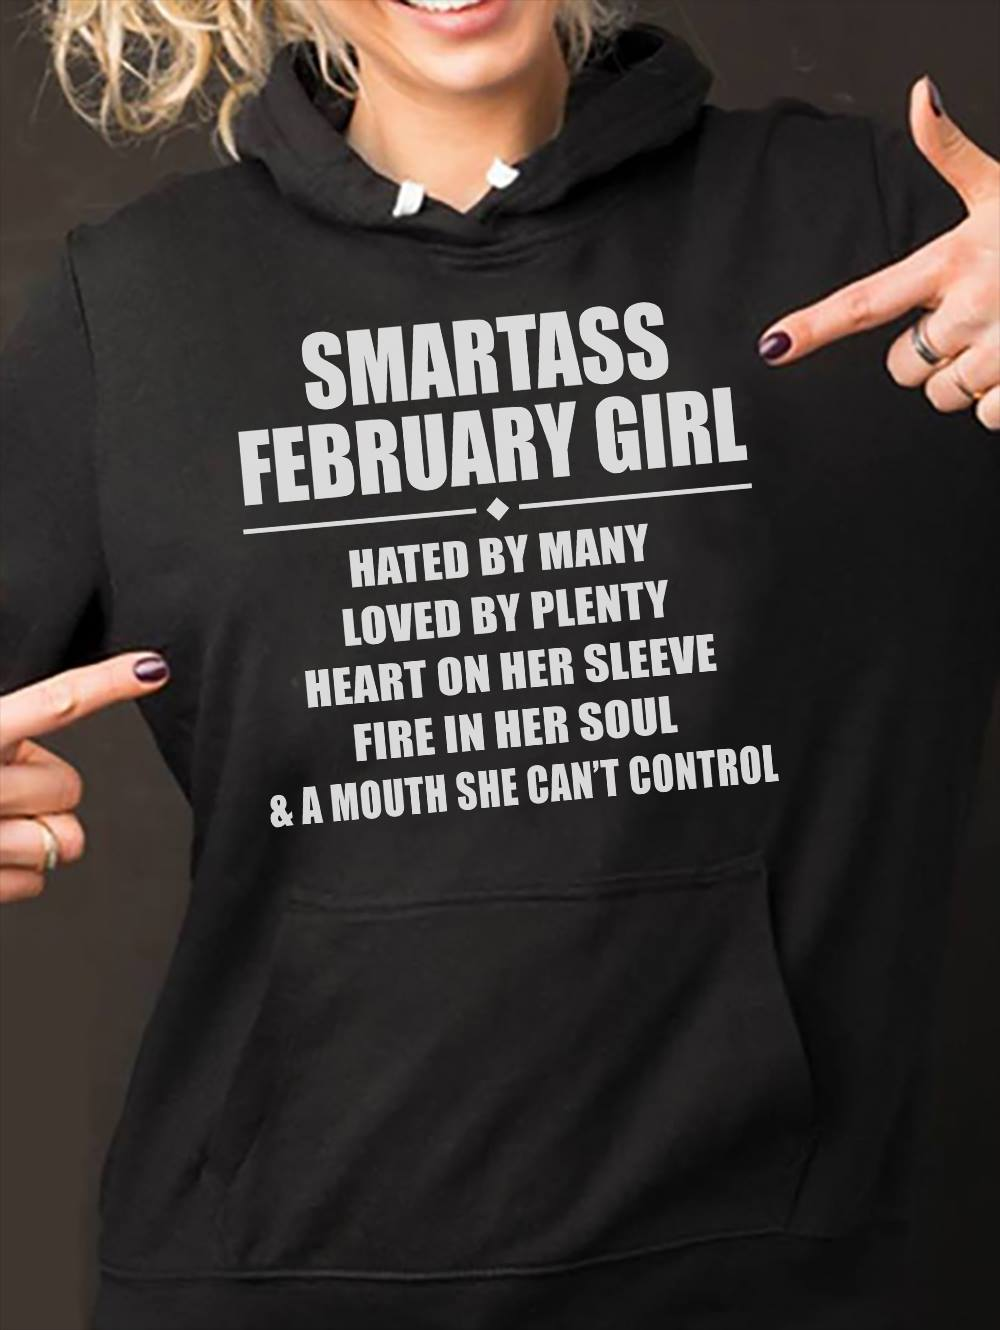 Smartass February Girl Shirt Hated By Many Loved By Plenty